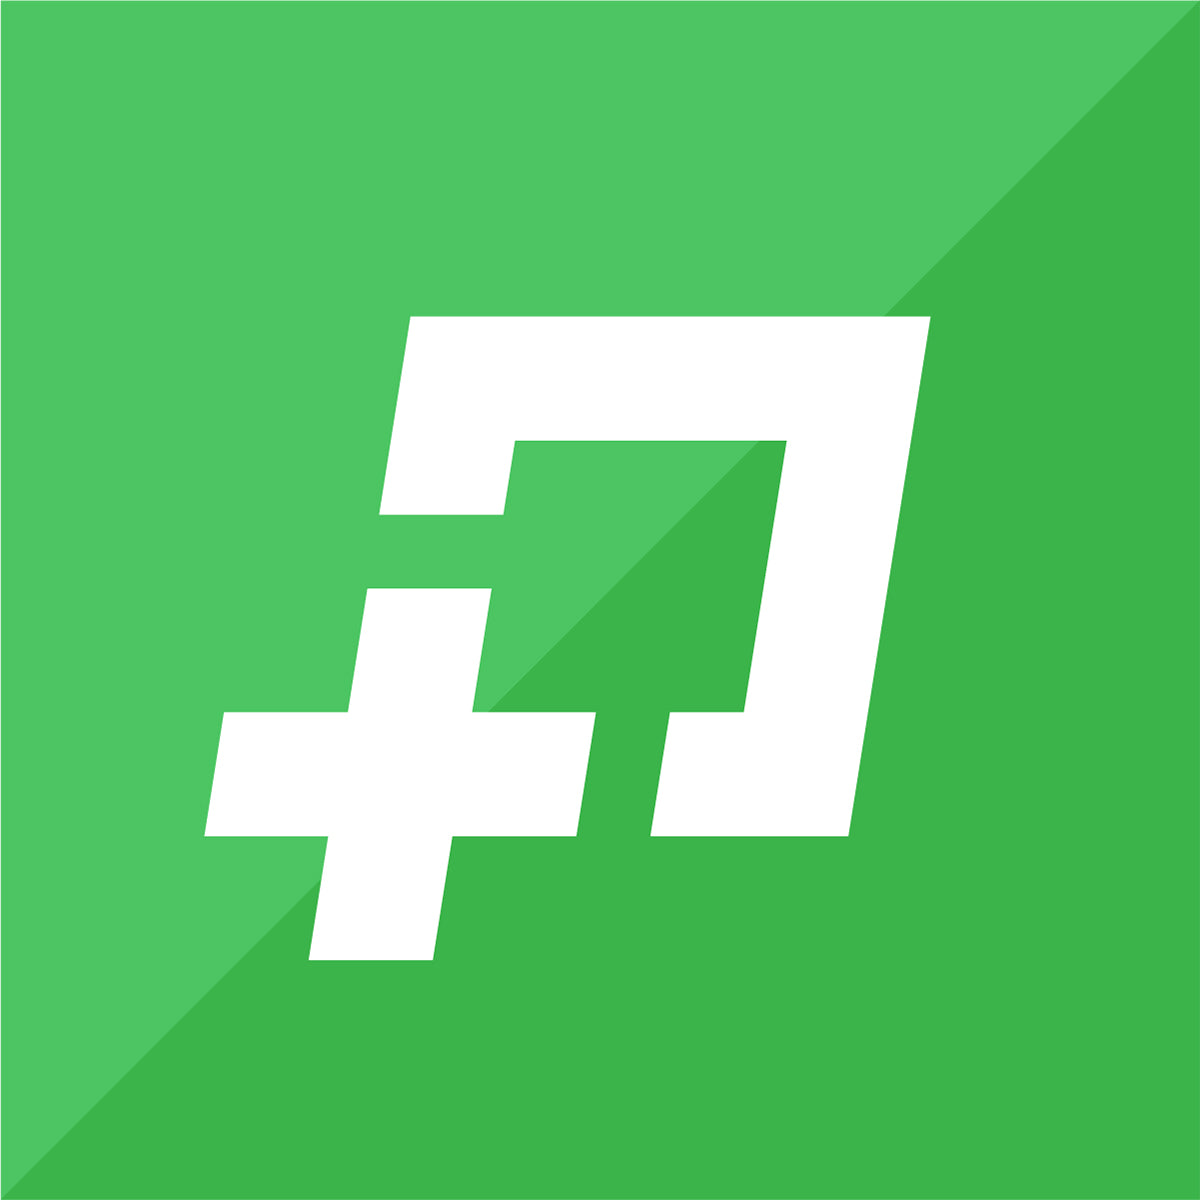 Hire Shopify Experts to integrate Zipify Pages Builder & Editor app into a Shopify store